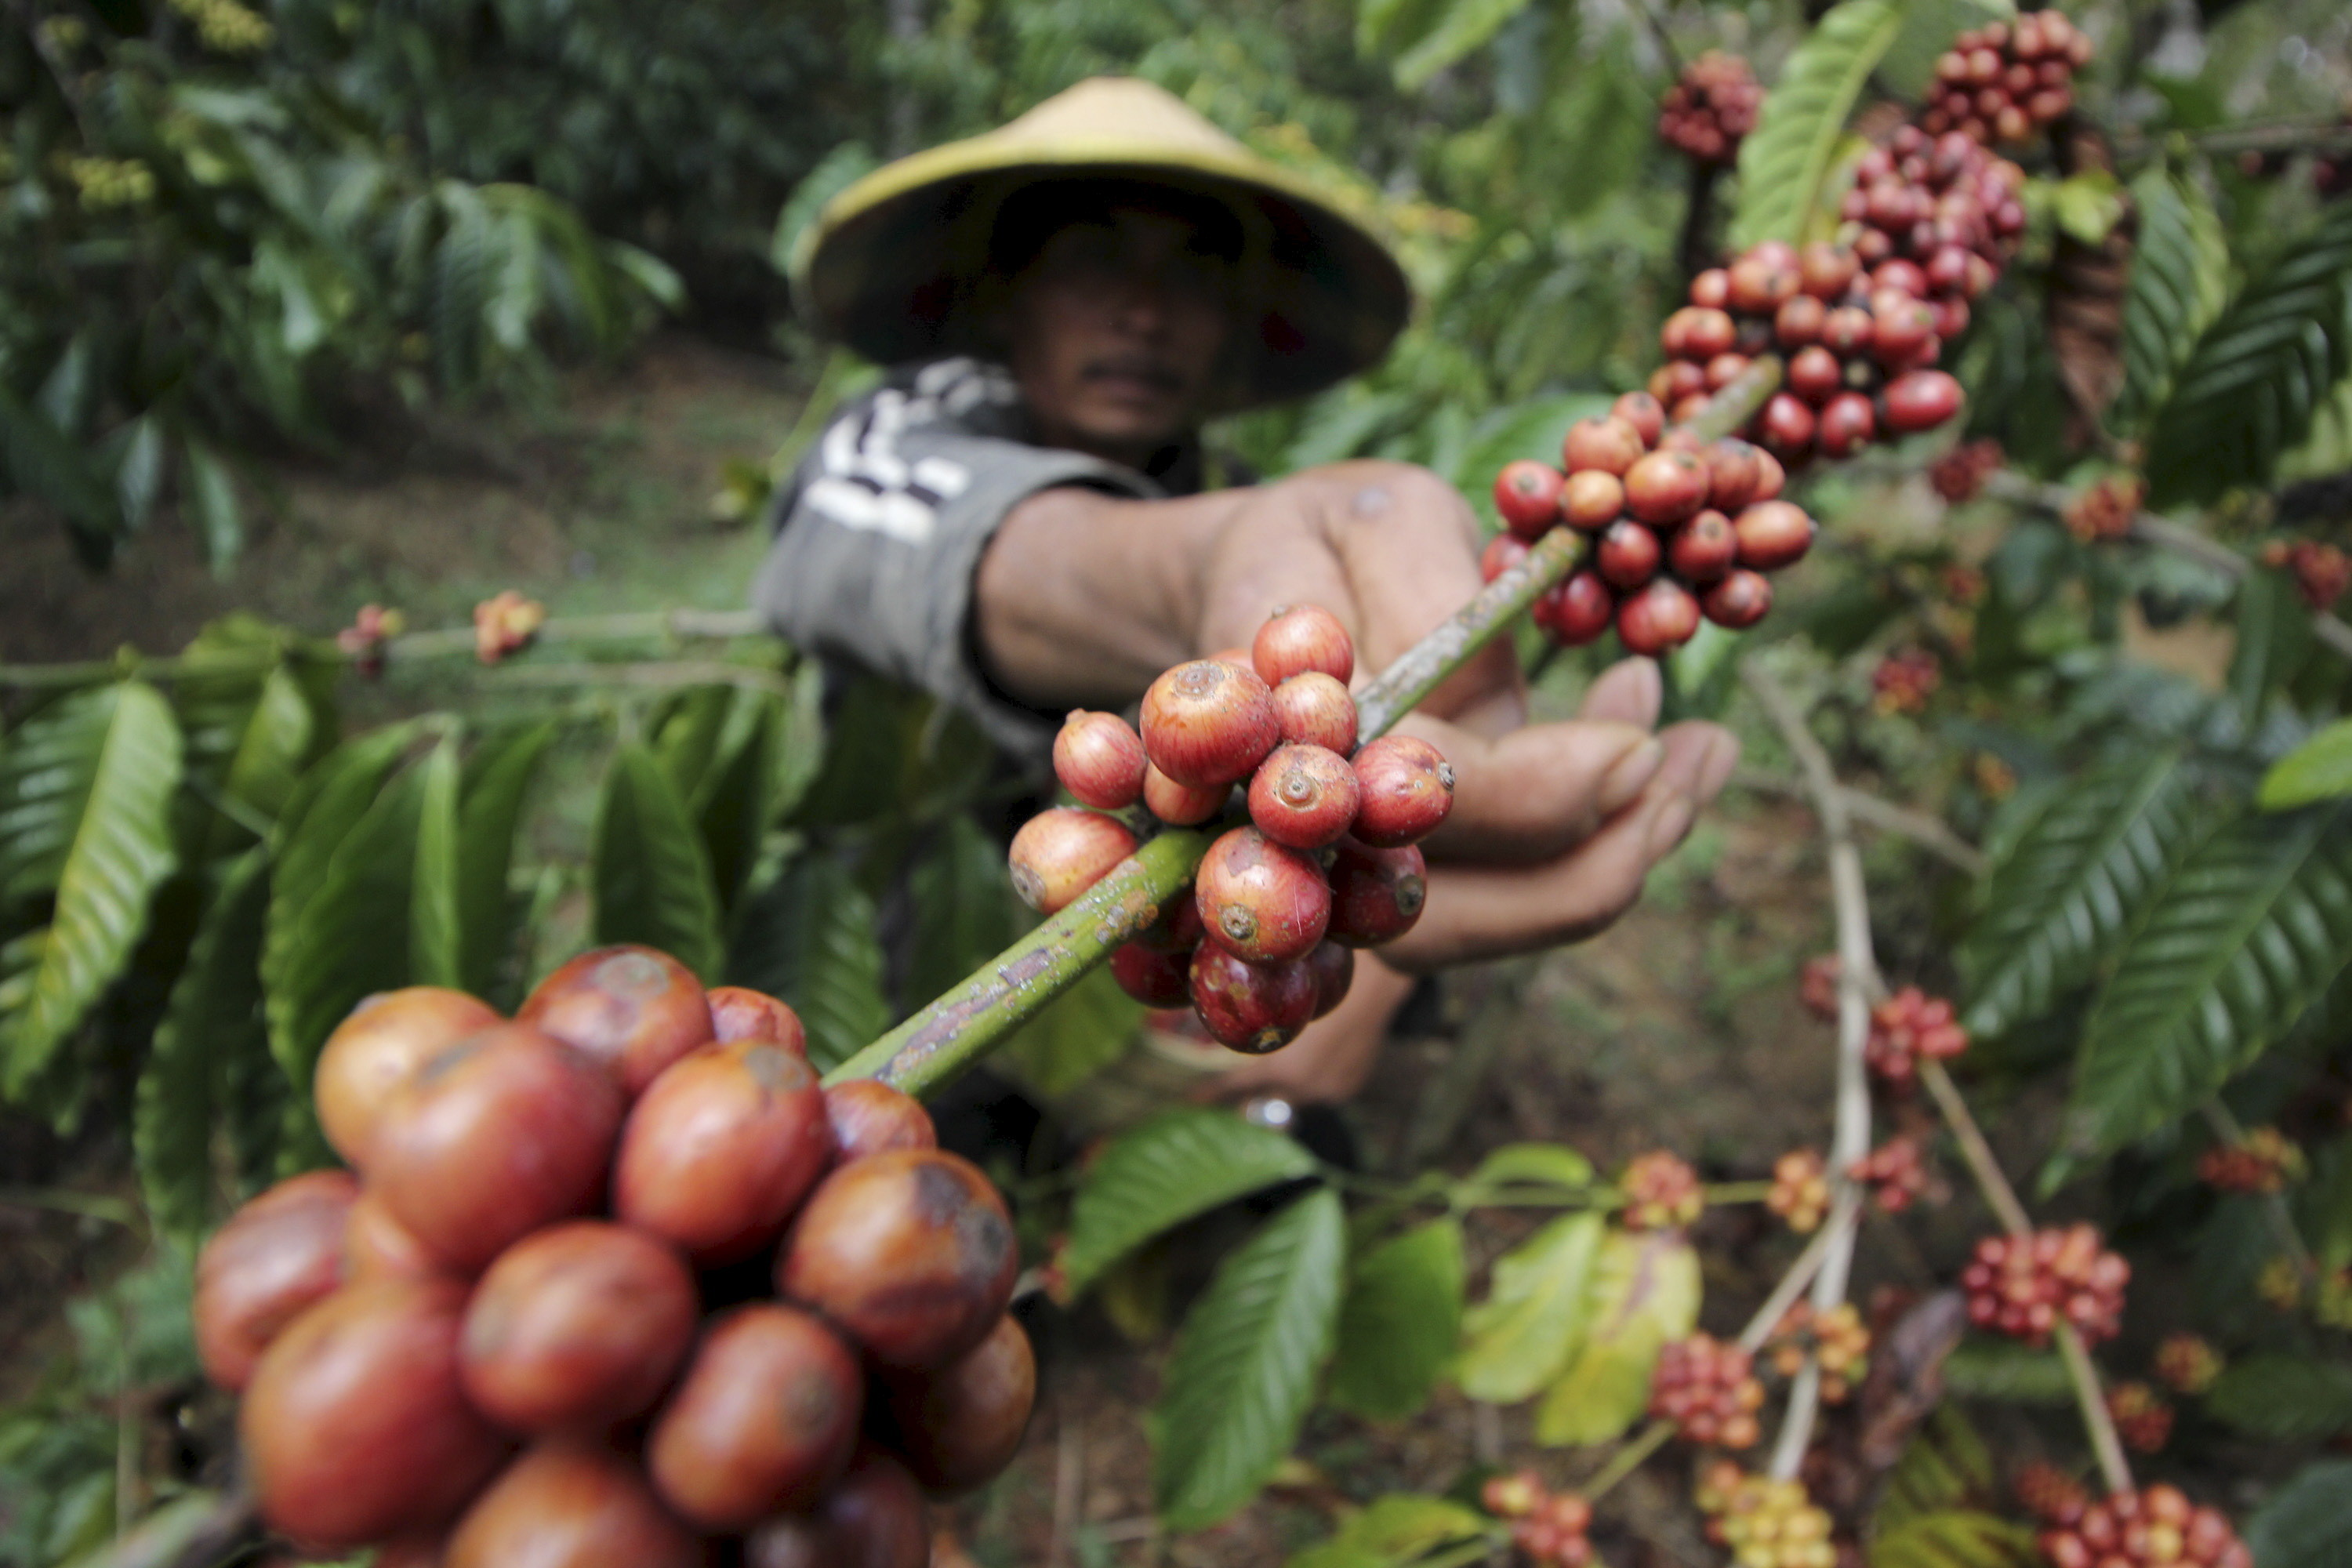 A farmer harvests robusta coffee in East Java, Indonesia.